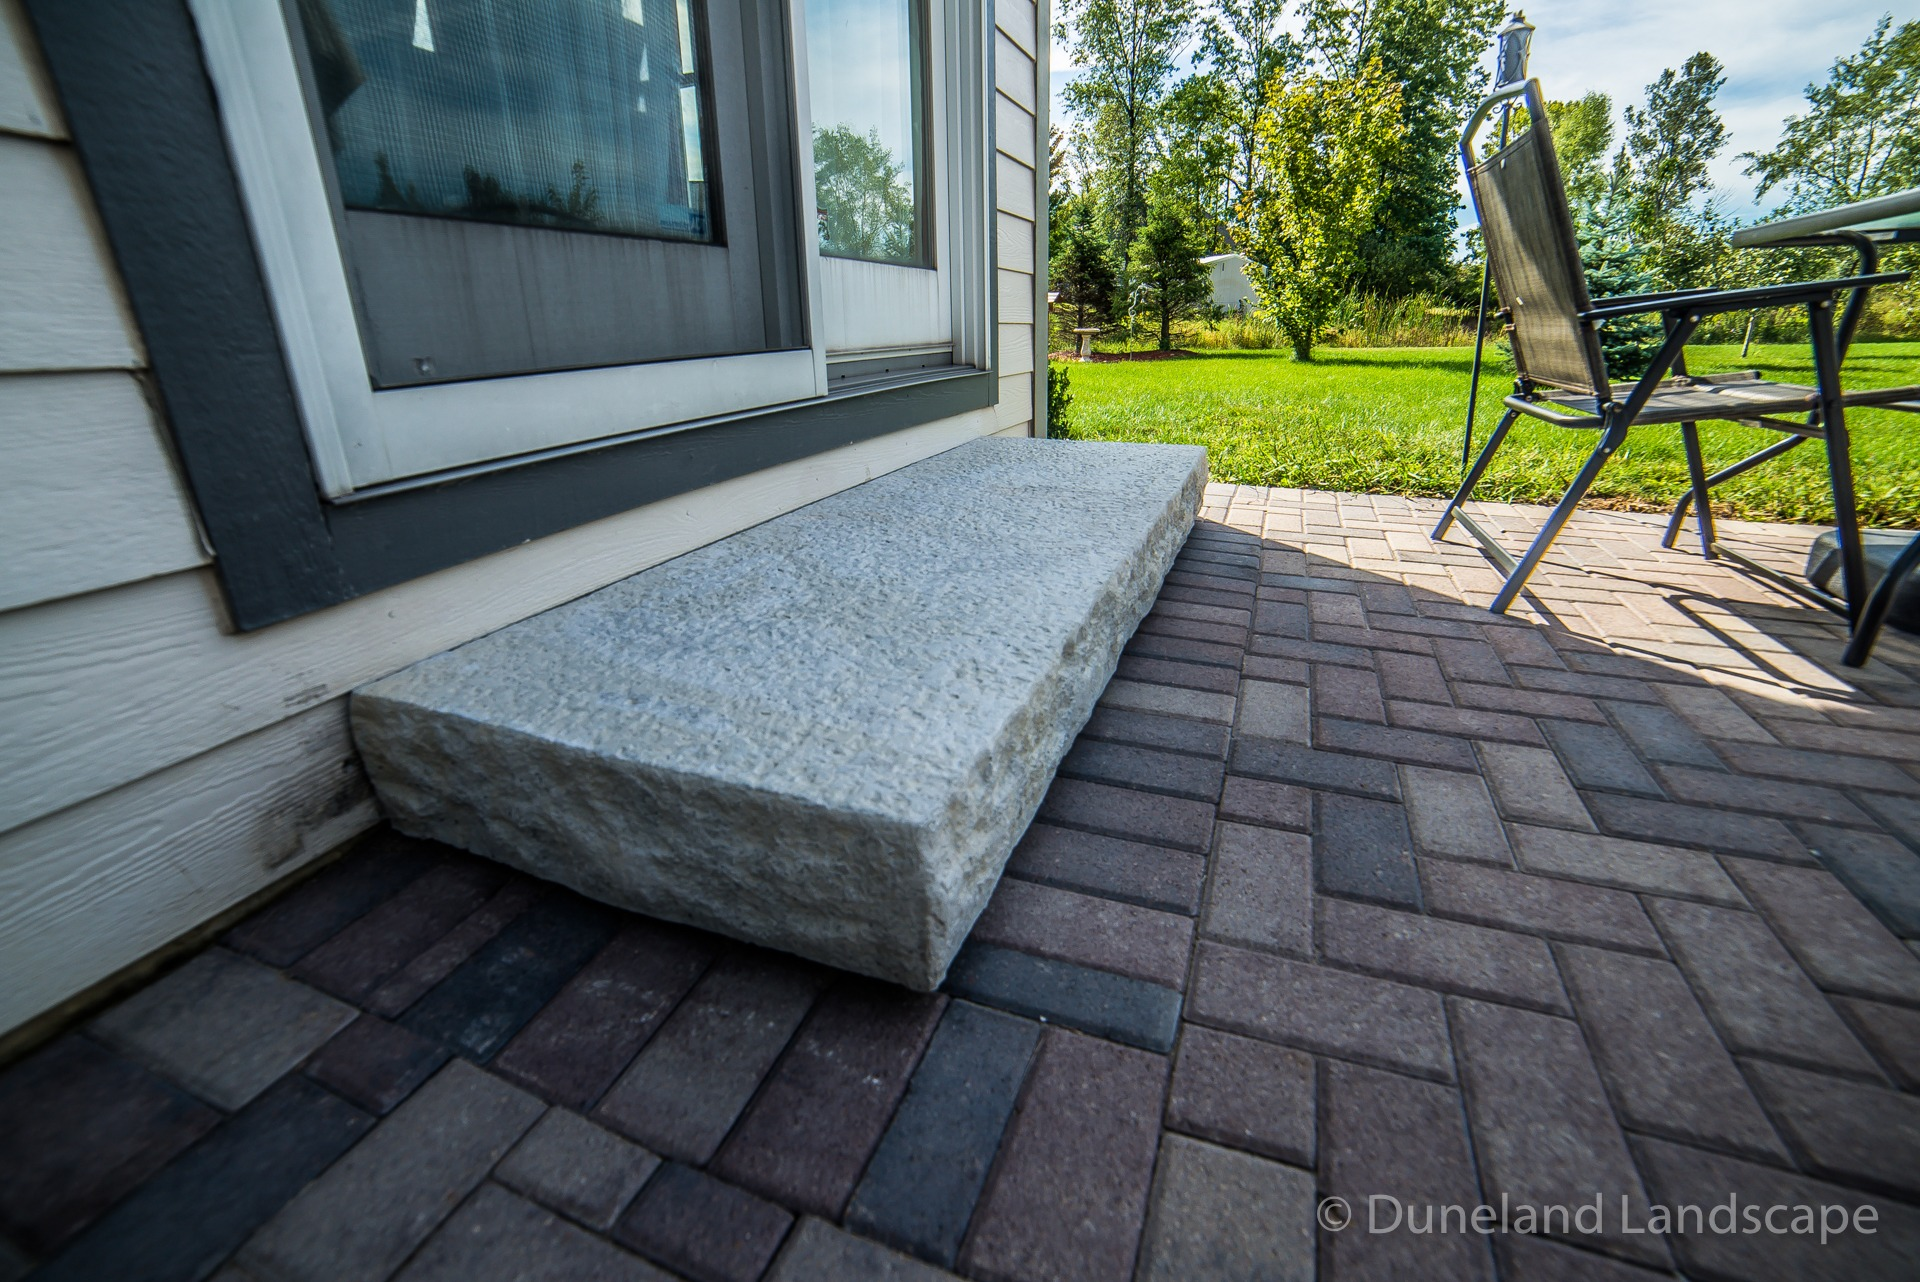 Hardscape stones for outdoor patio